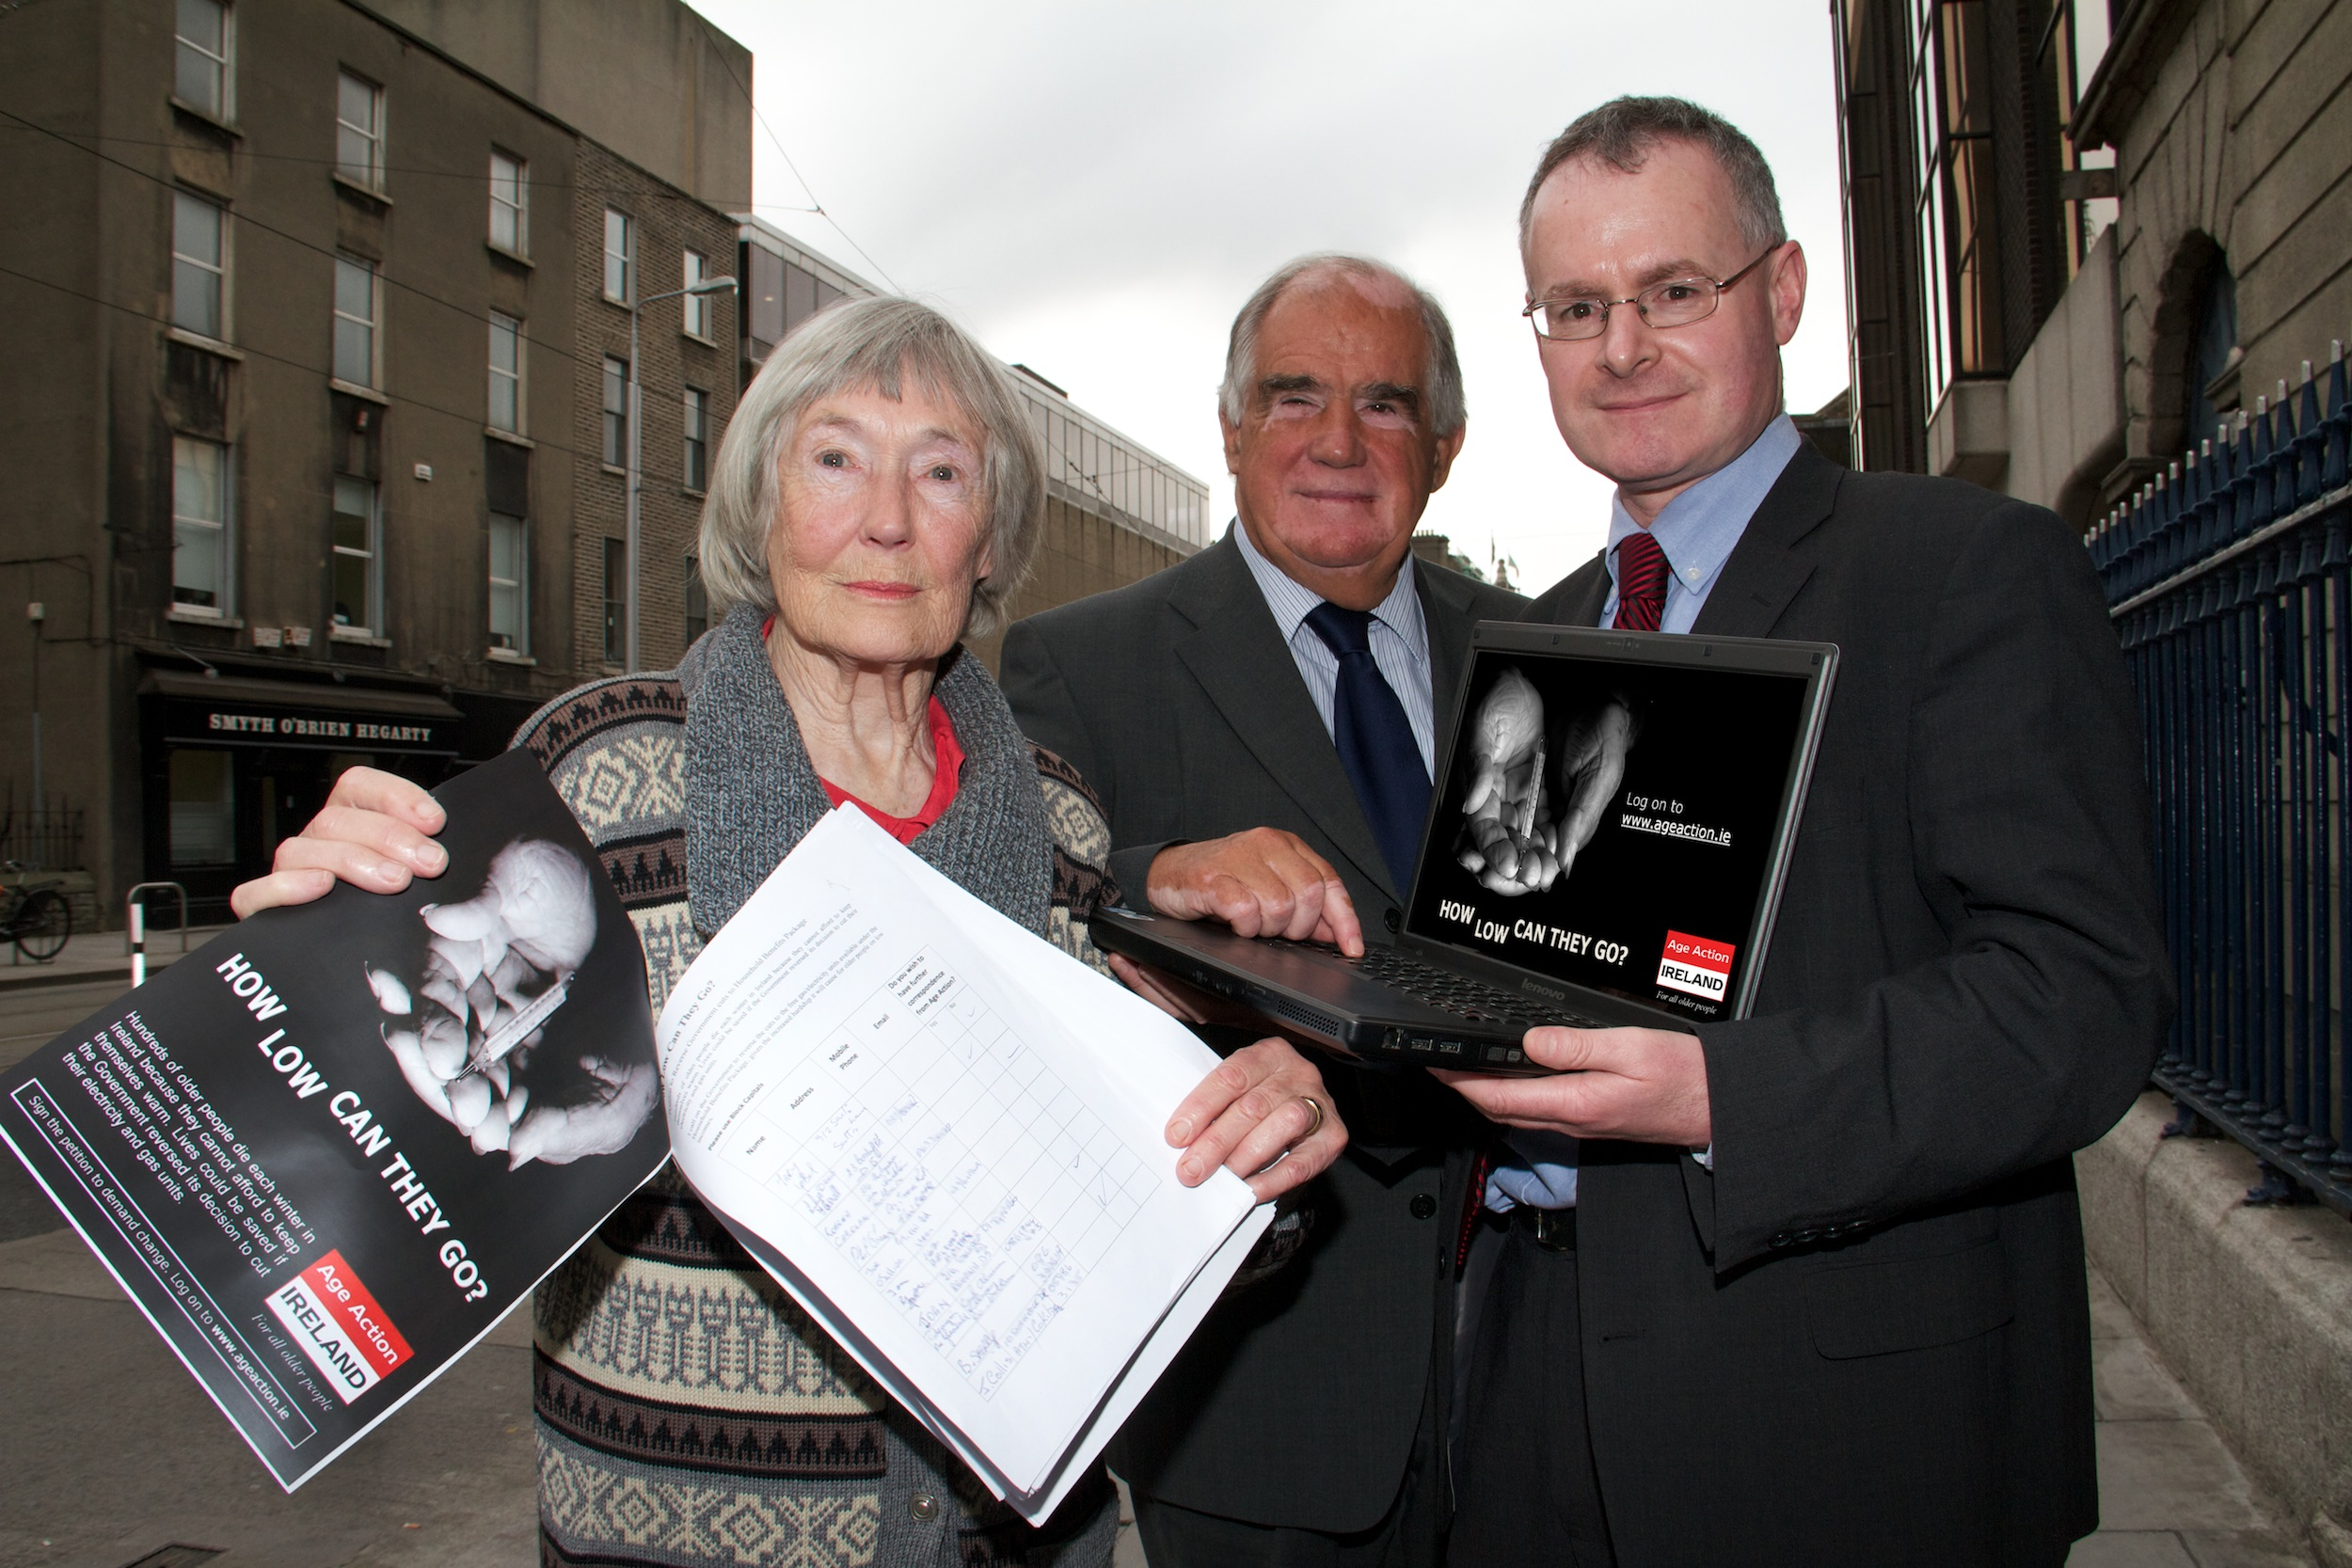 Pictured at the Age Action appeal were left to right:  Beth Noonan, Blackrock  Robin Webster, Chief Executive of Age Action Ireland. Eamon Timmins, Head of Advocacy and Communications.